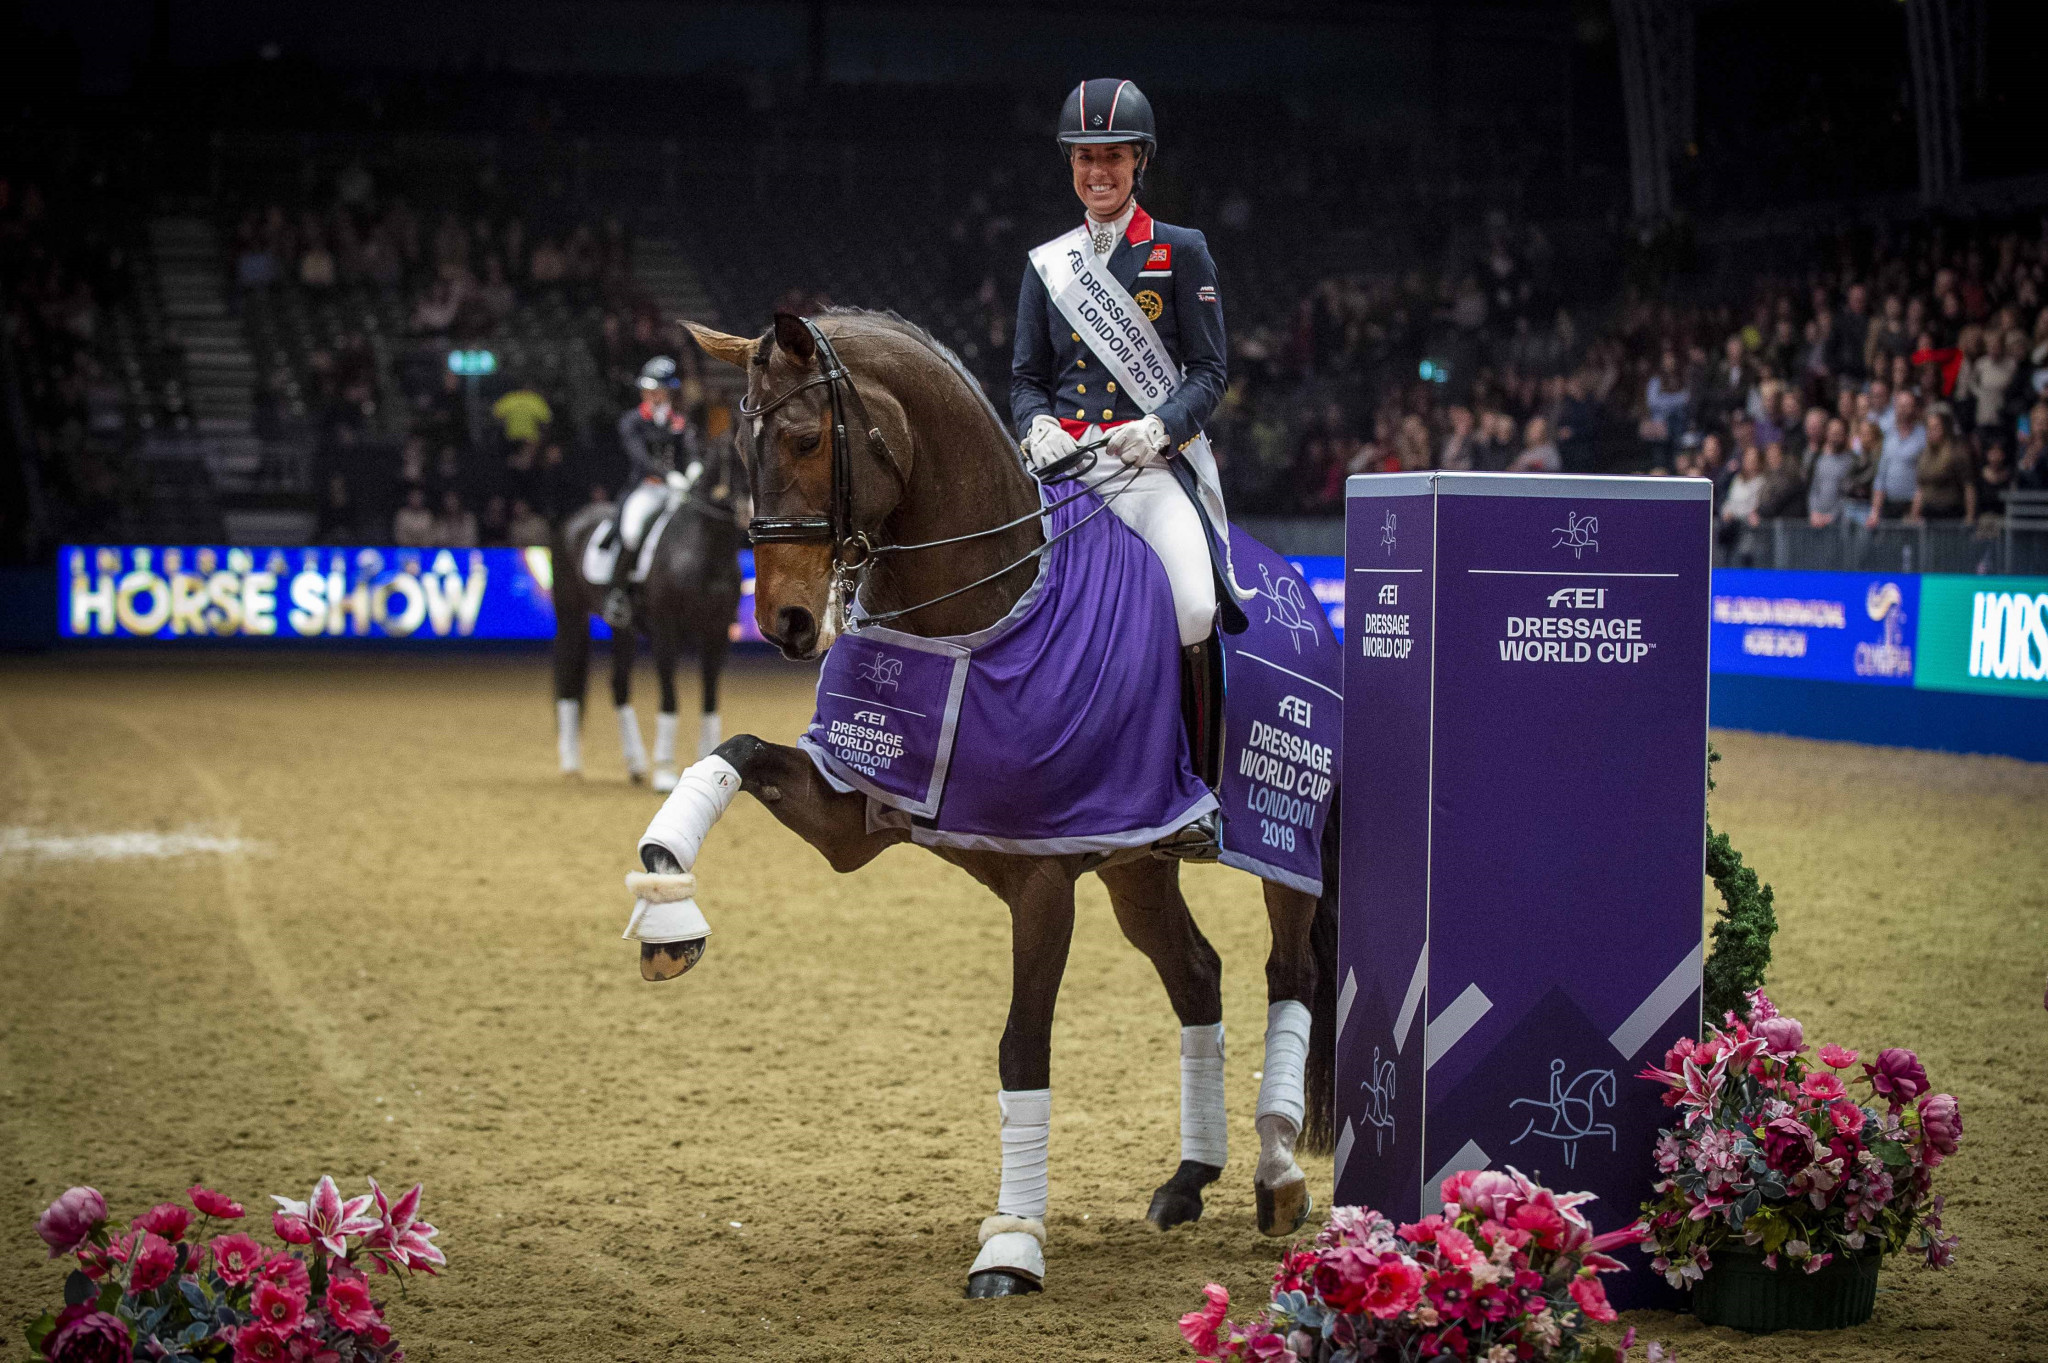 Dujardin delights home crowd as Britain dominate FEI Dressage World Cup in London